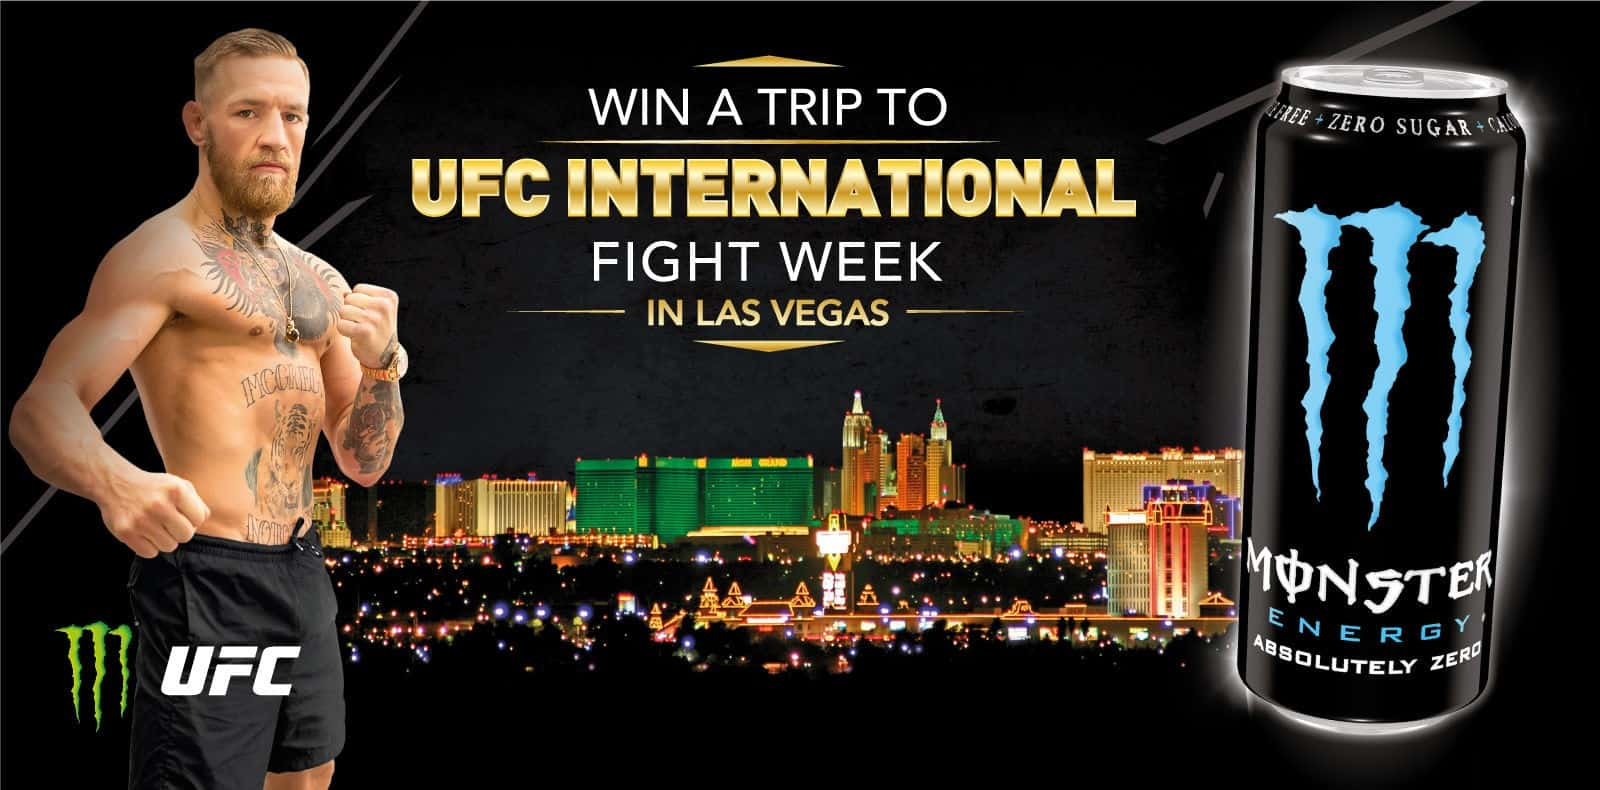 Win a trip for 2 to UFC Fight week in Las Vegas